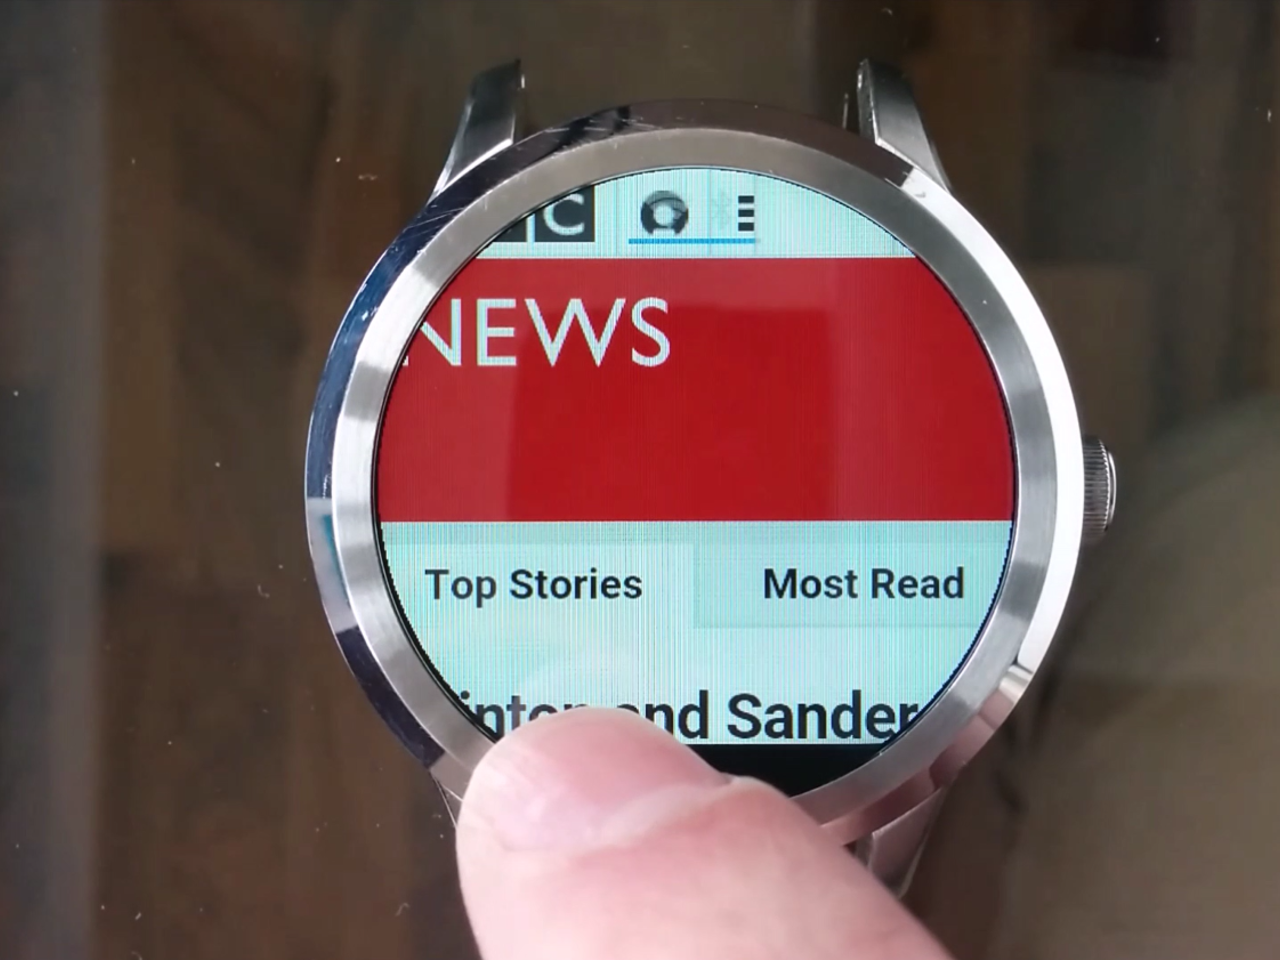 Apps for Intel powered smartwatches